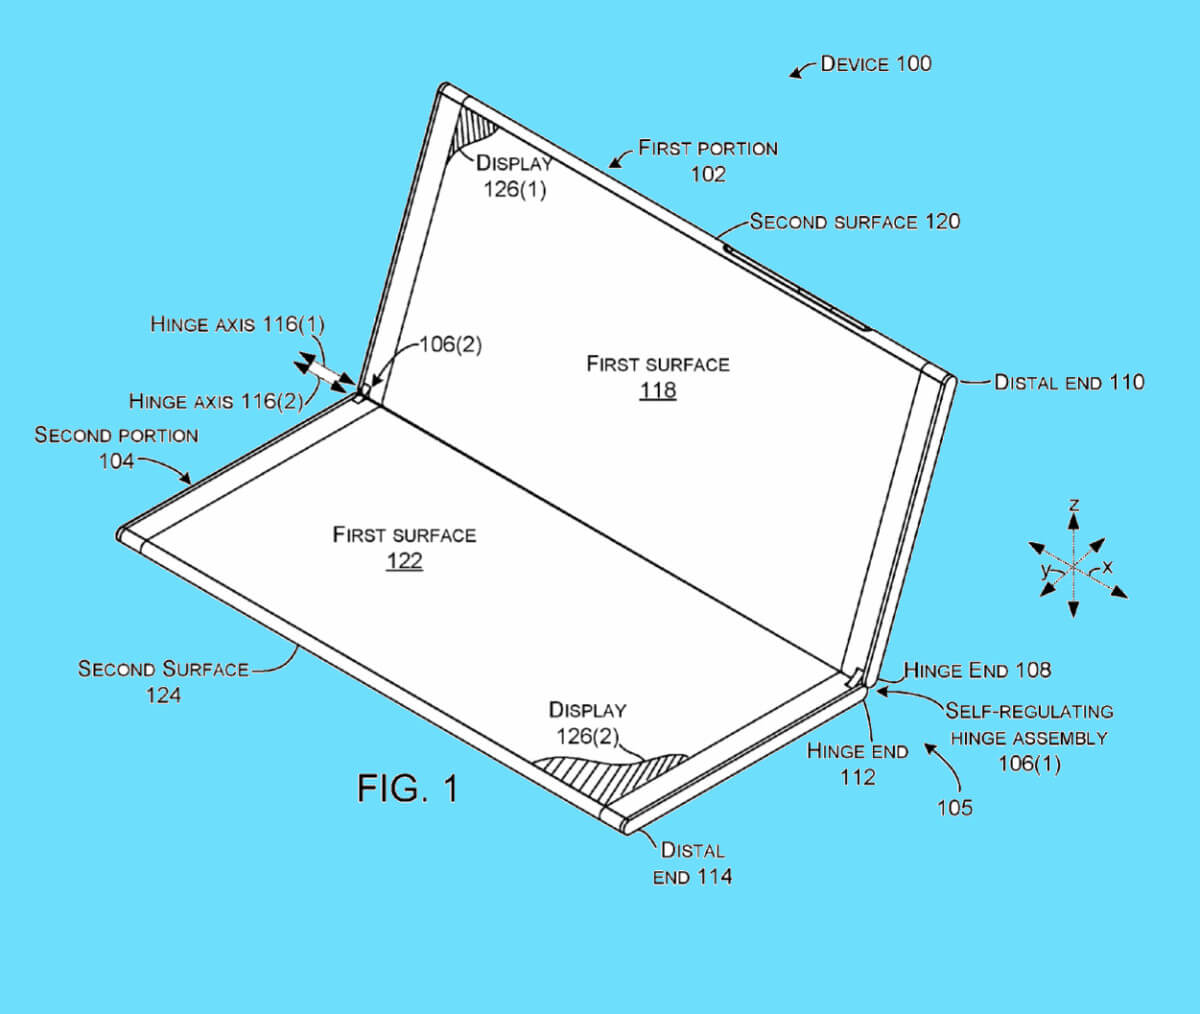 New Microsoft patent shows off special hinge for foldable device